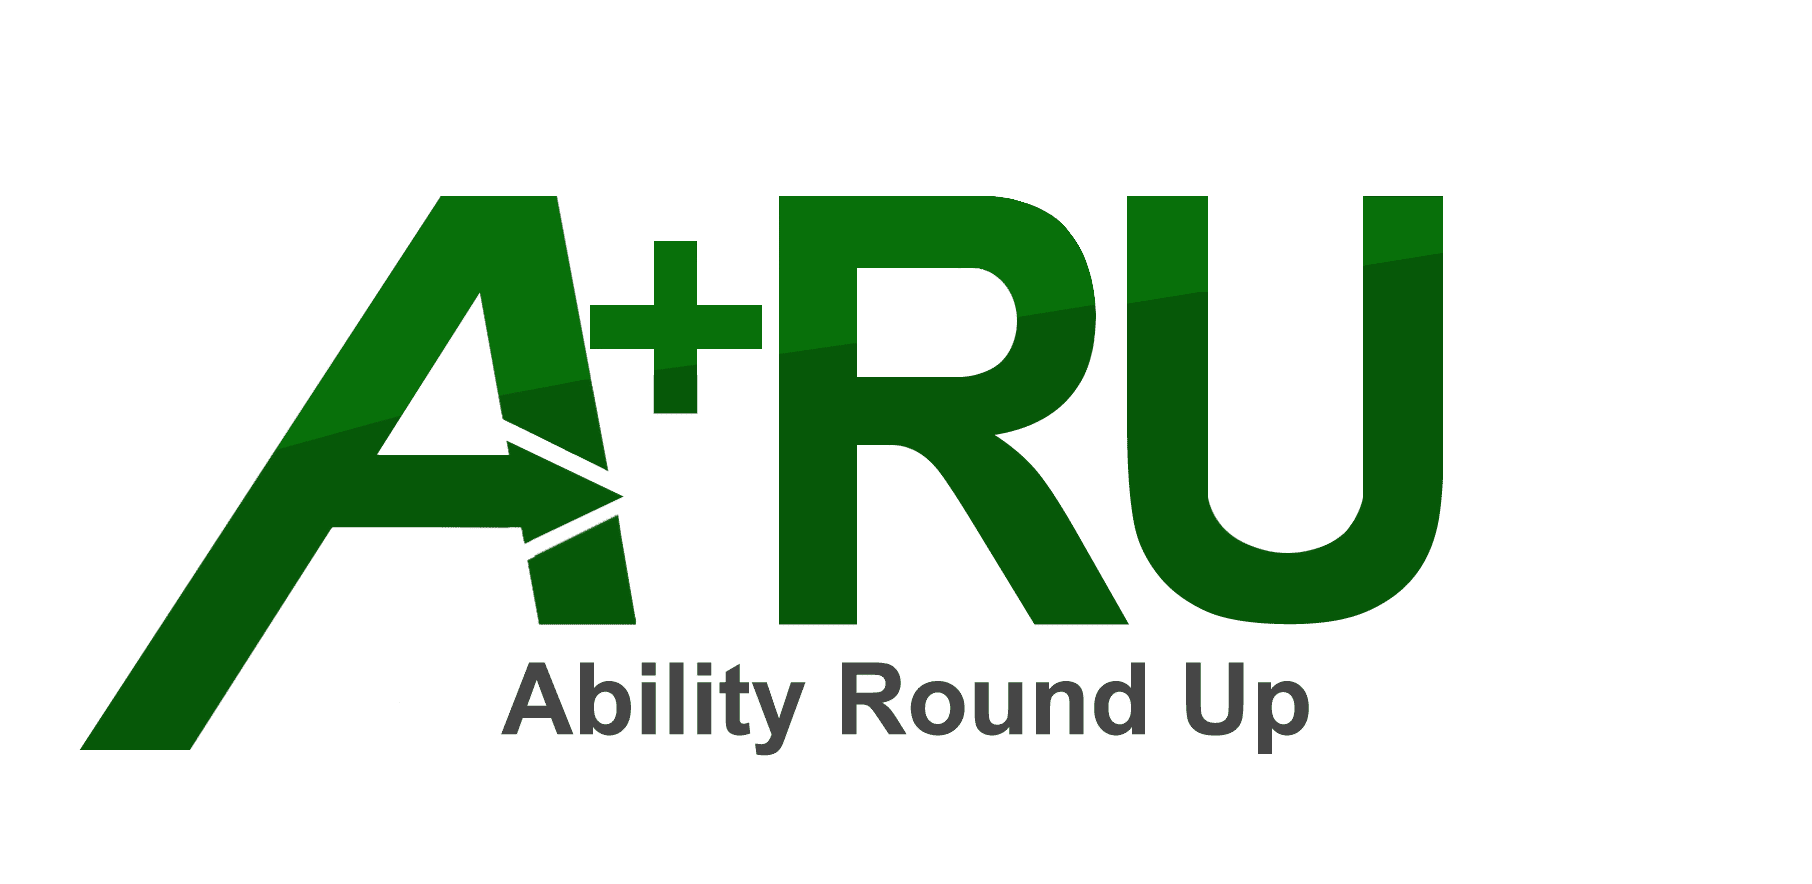 Ability Round Up - Donations